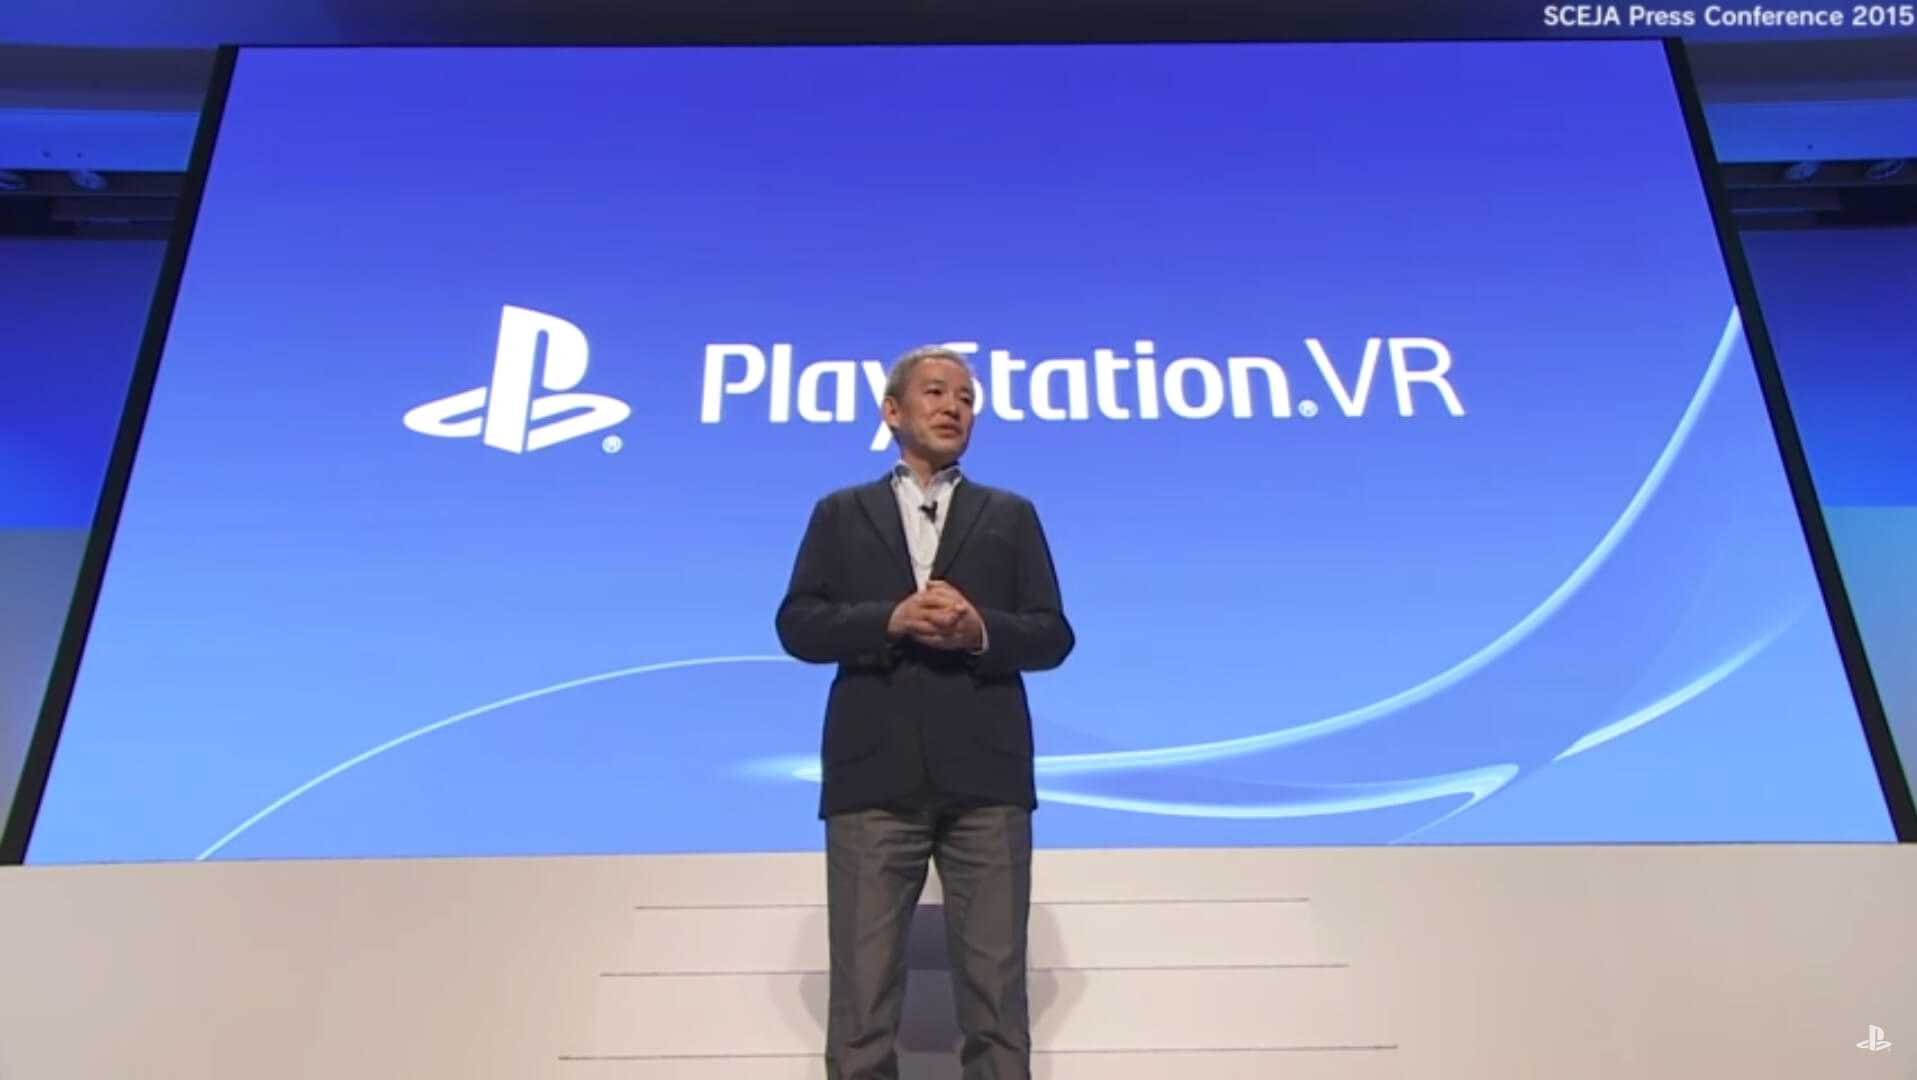 PlayStation VR Price is only $399 release October 2016